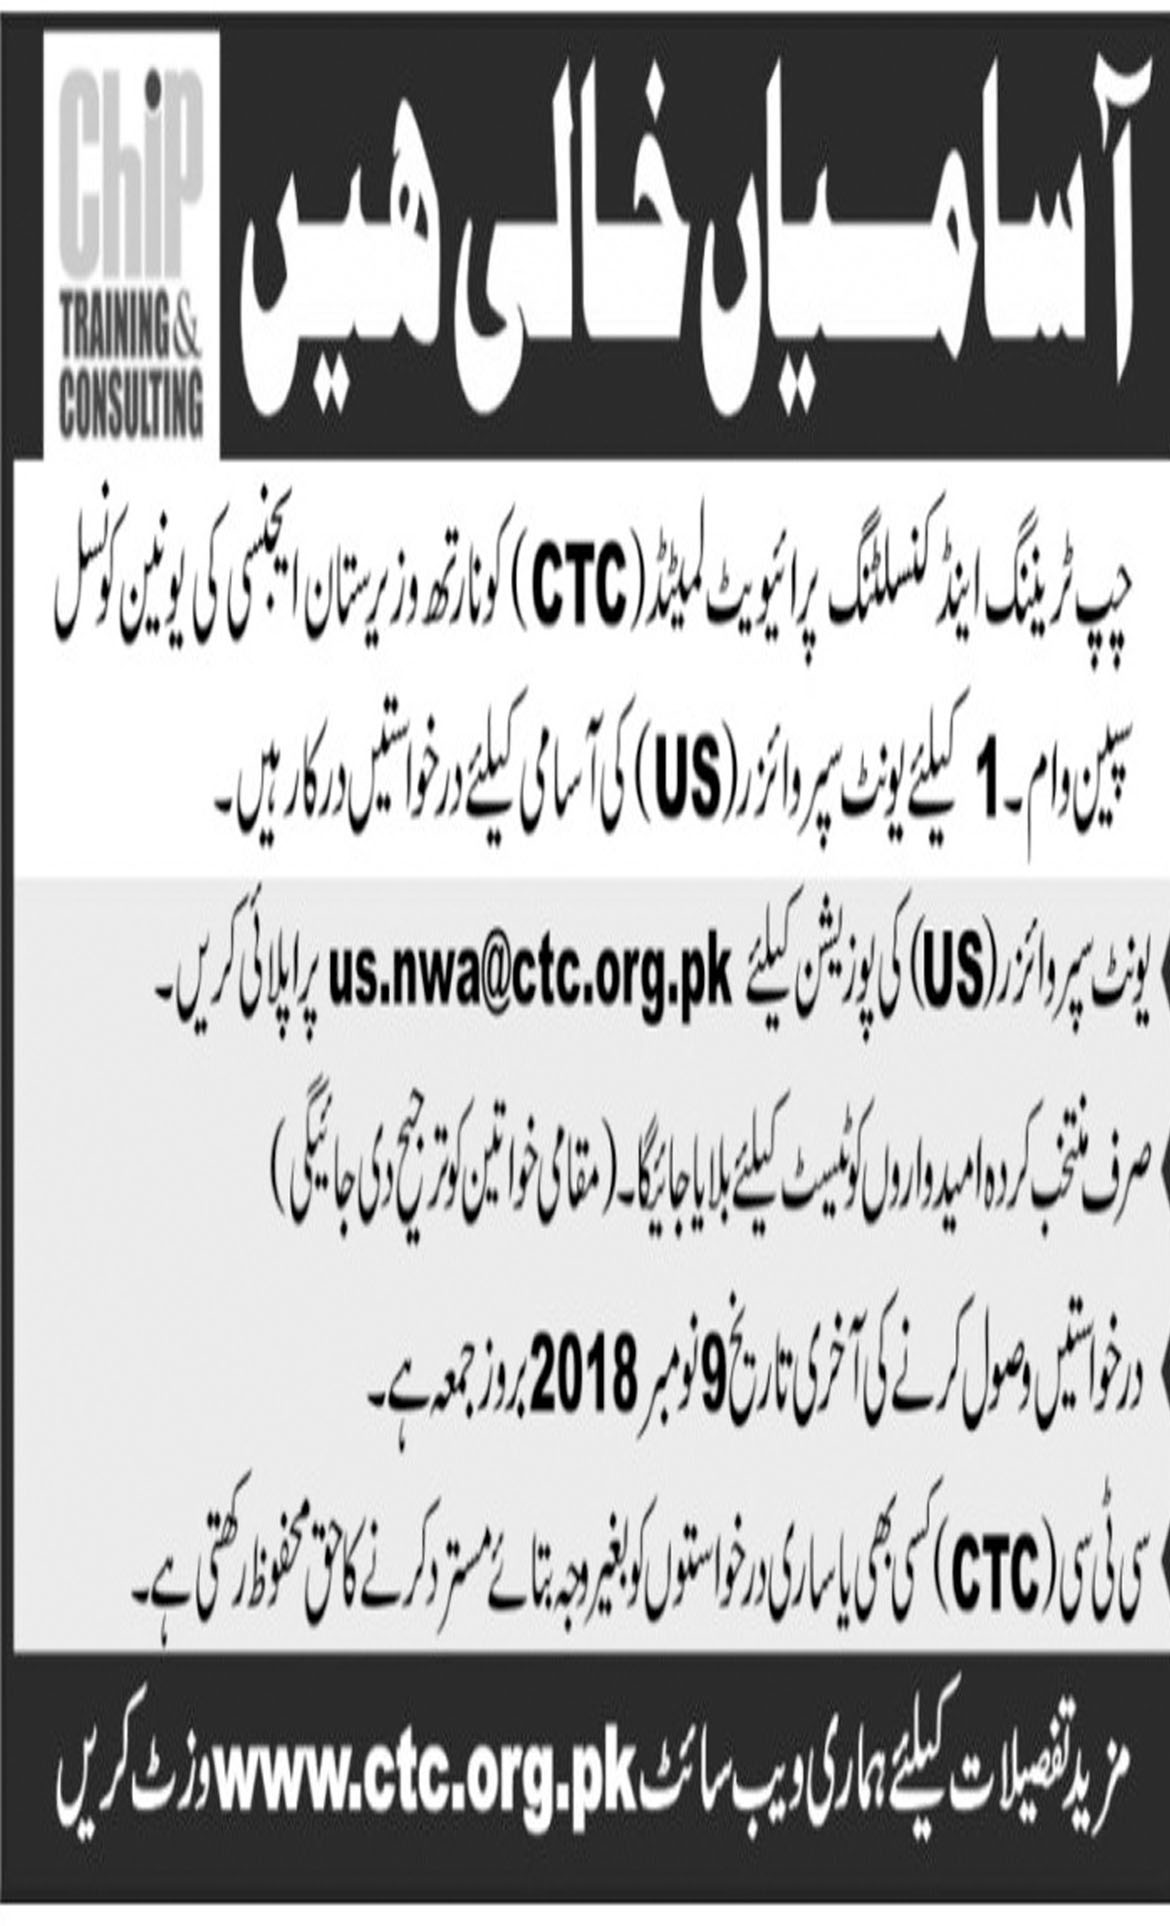 Jobs In Chip Training And Consulting 06 Nov 2018